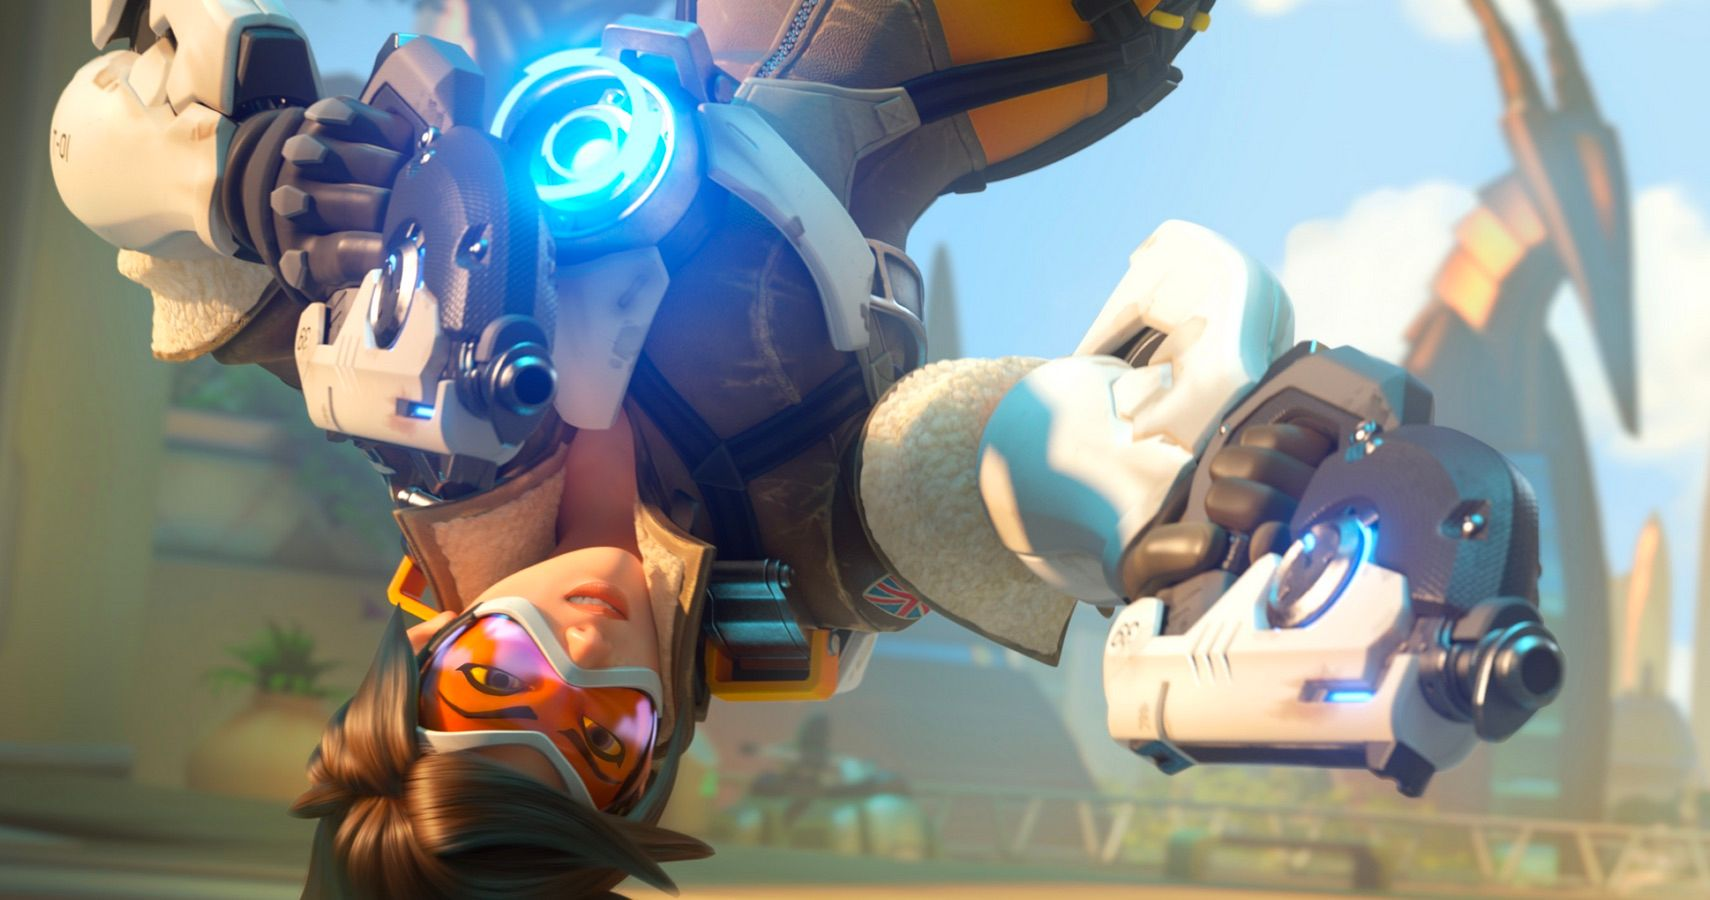 Blizzard Comments on Overwatch Characters in Super Smash Bros. Ultimate